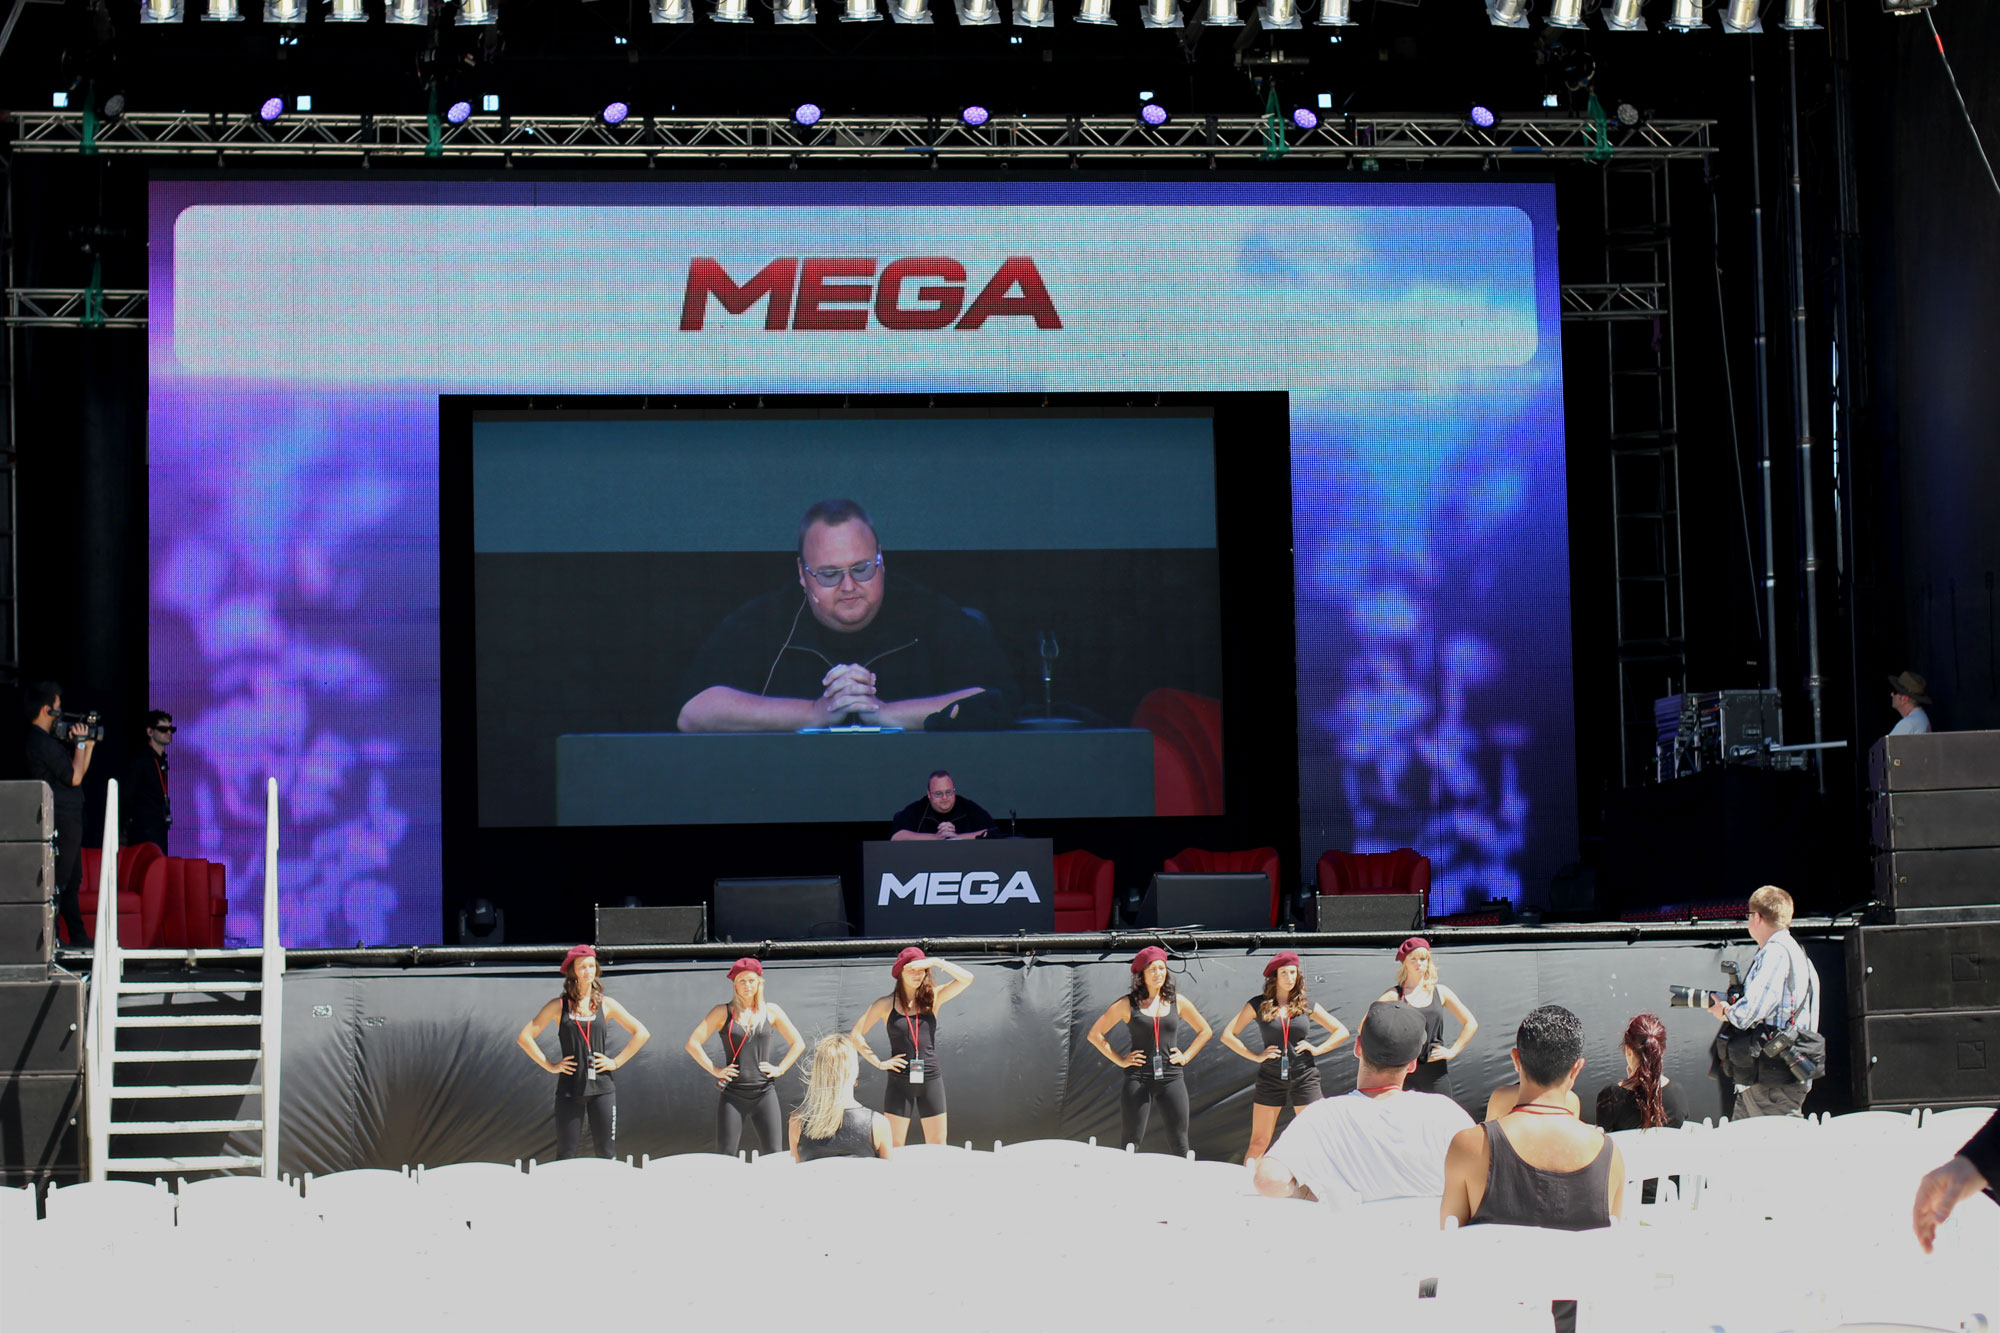 stage Face to face with Kim Dotcom as he launches Mega, talks about Megakey and the future of free content